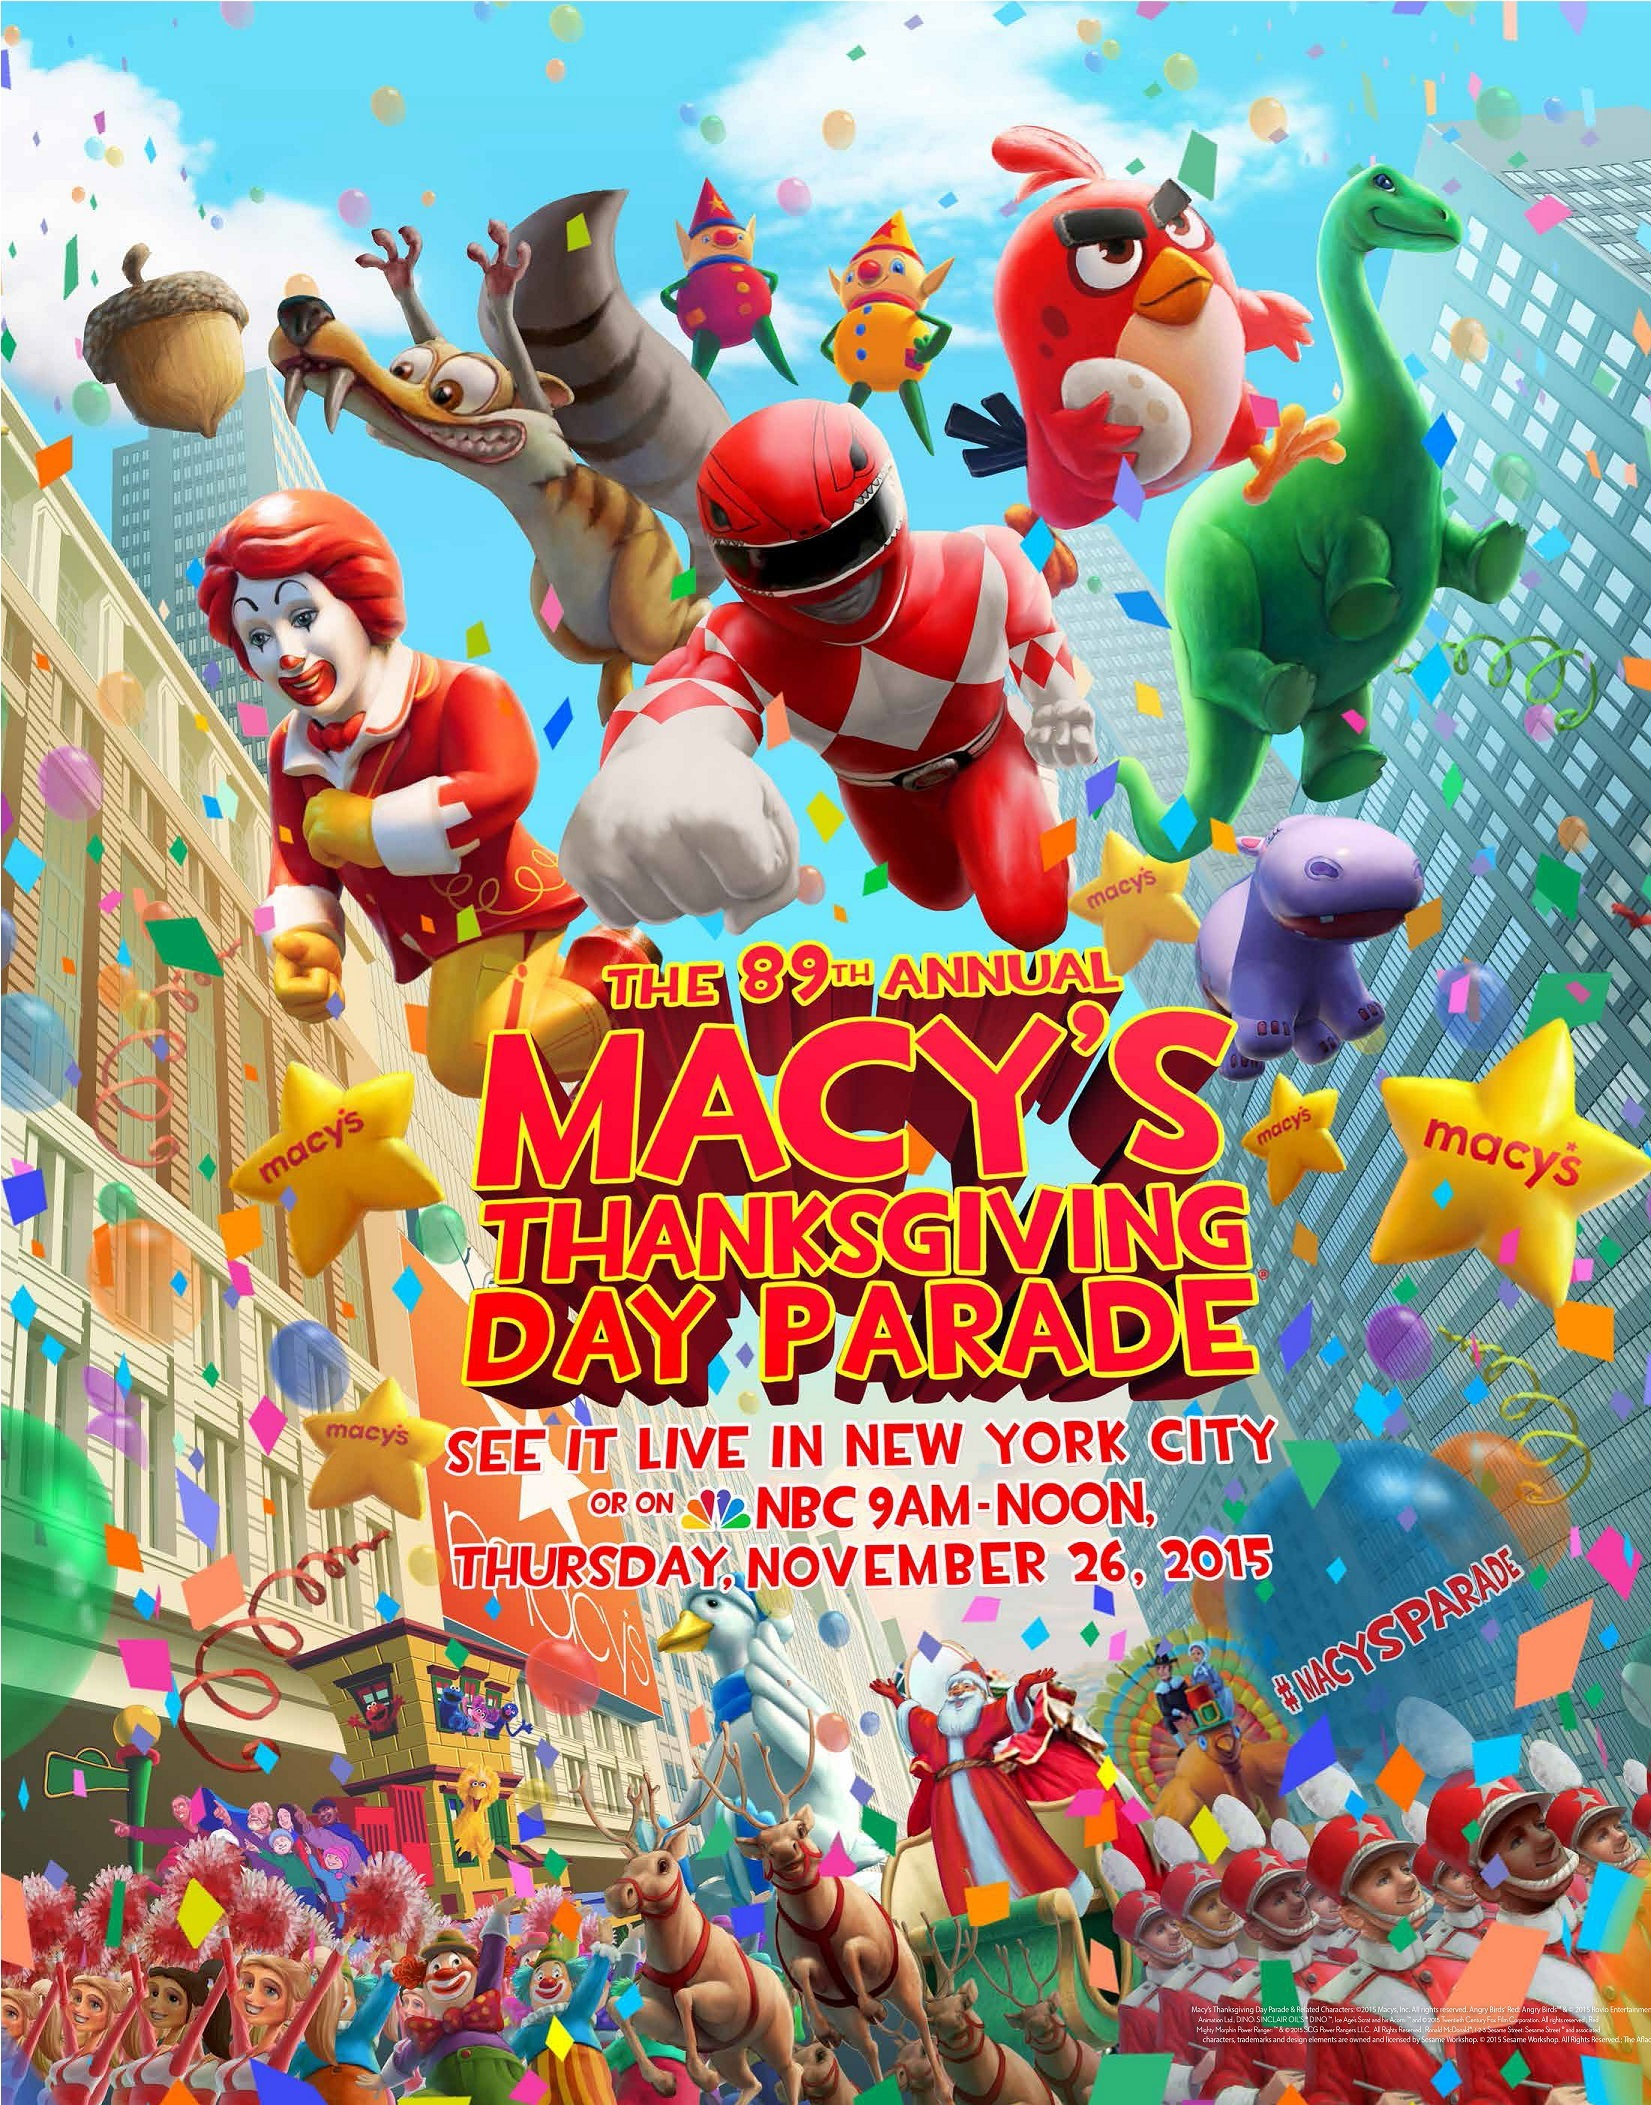 Macy's March of Magic | Business Wire